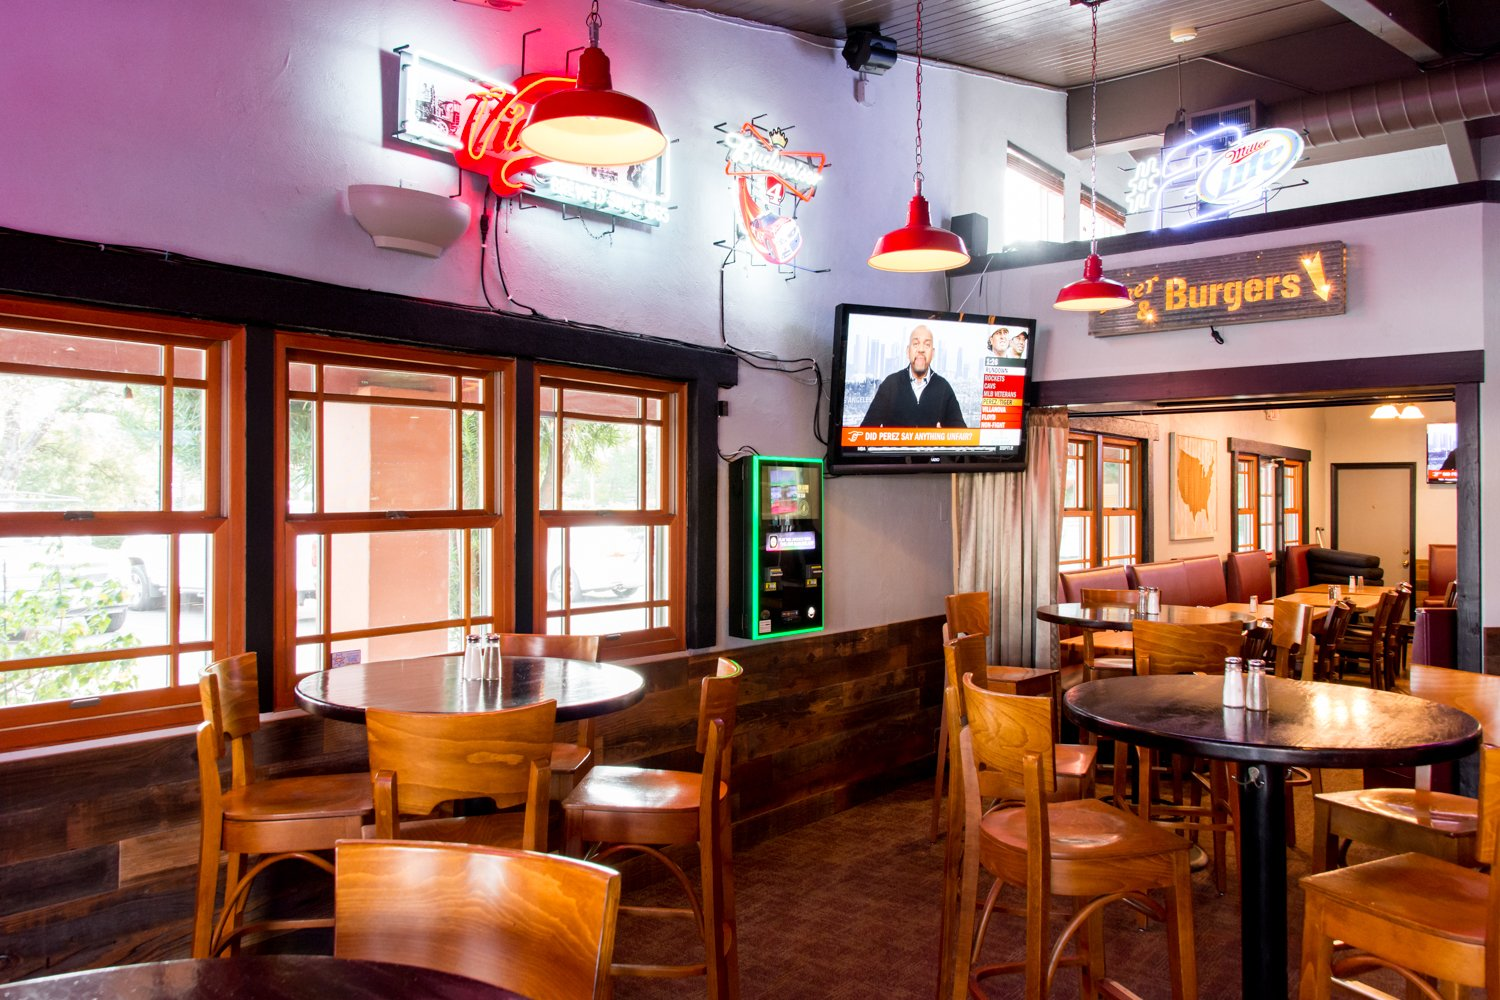 Red Hen Bar and Grill  interior seating area